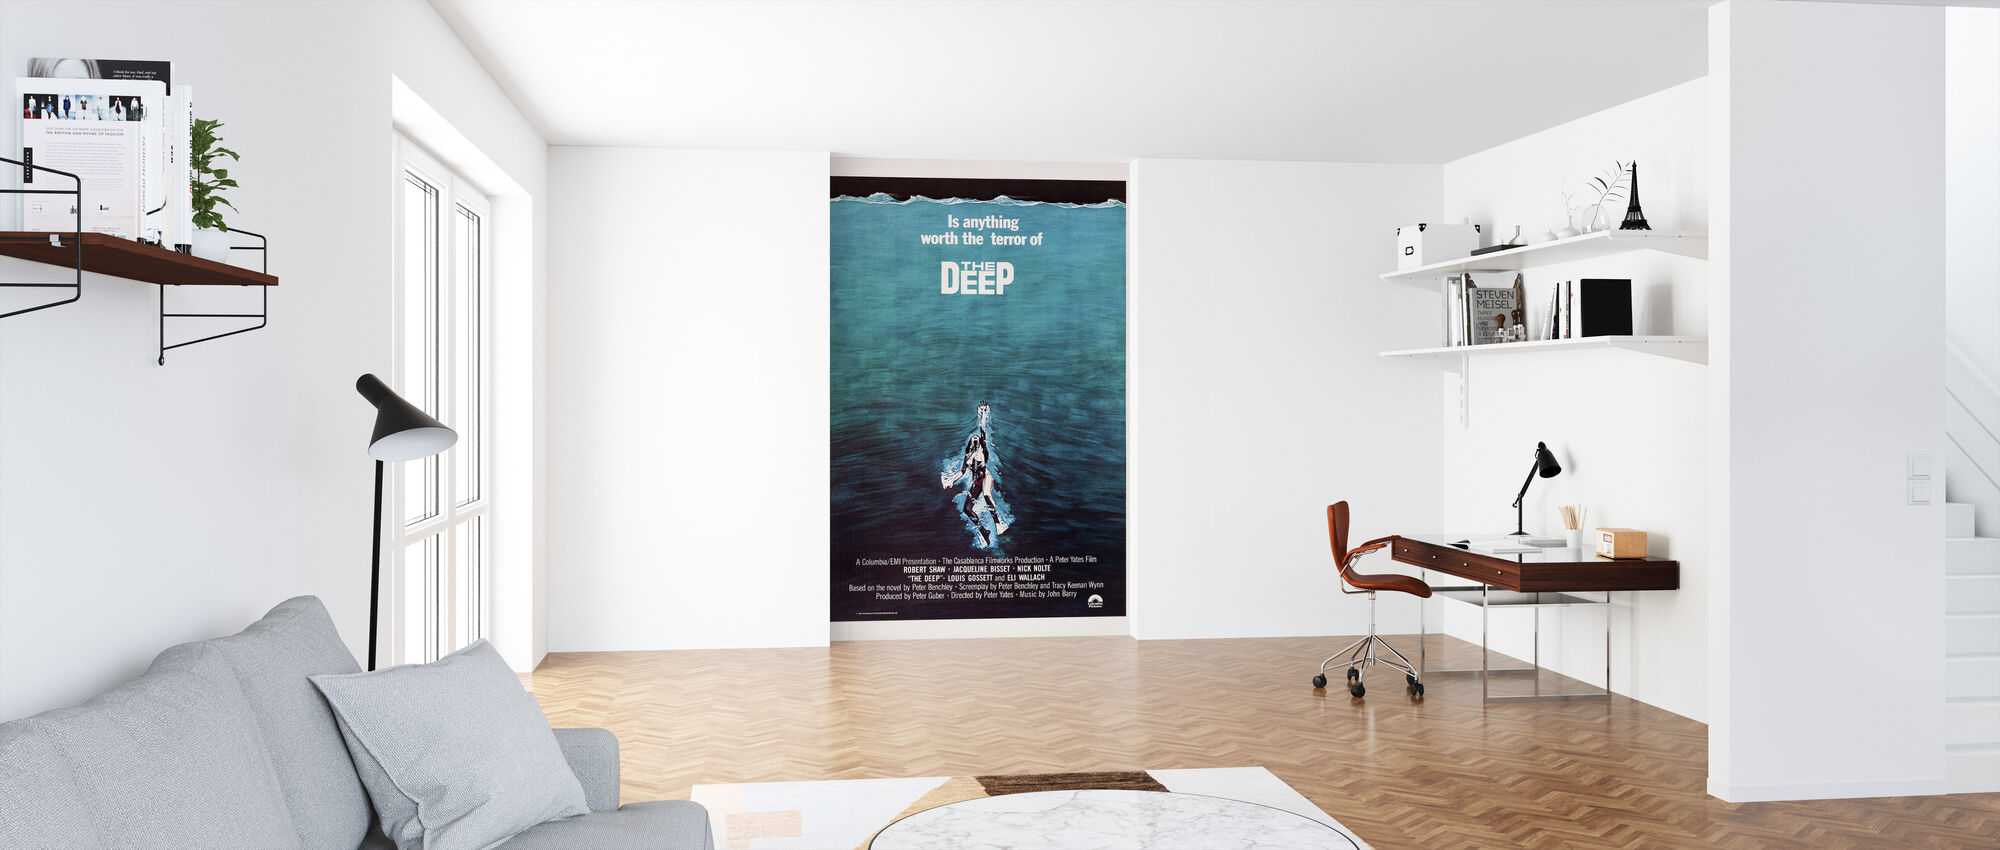 Movie Poster The Terror of The Deep - Wallpaper - Office